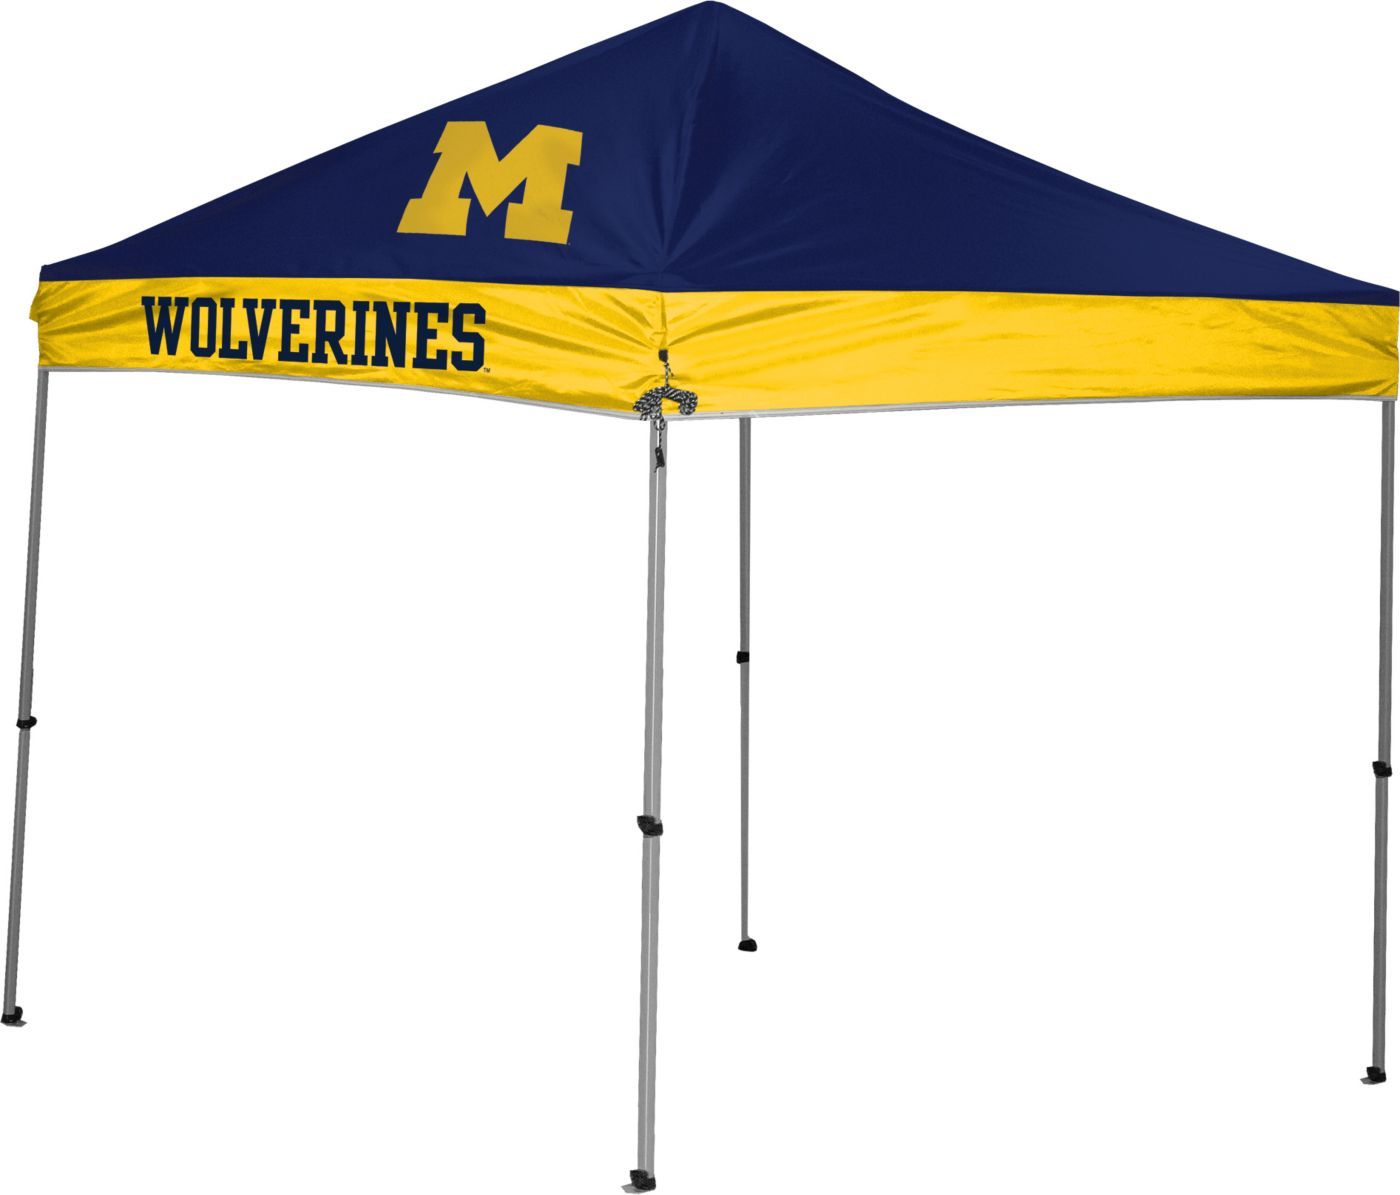 Rawlings Michigan Wolverines 9' x 9' Sideline Canopy Tent